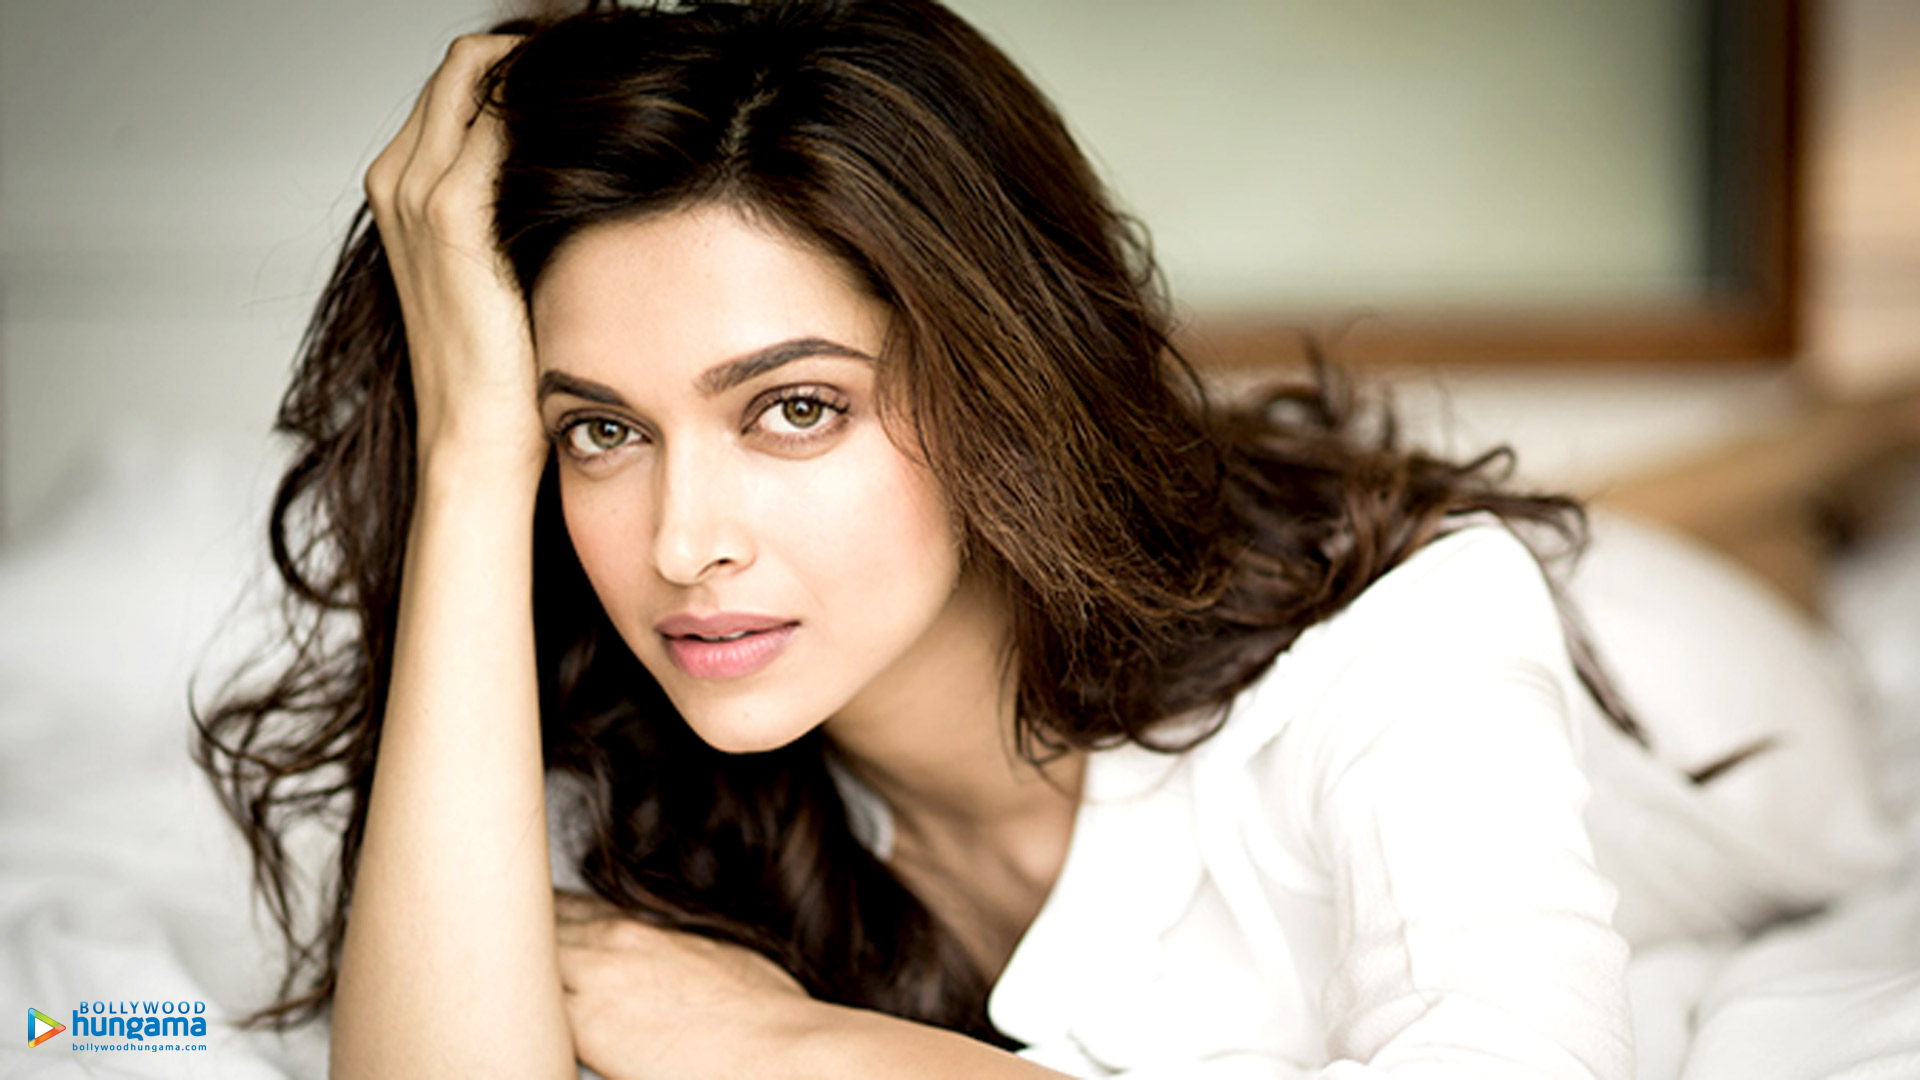 Deepika Padukone Photos Gallary Pictures Images and Wallpaper